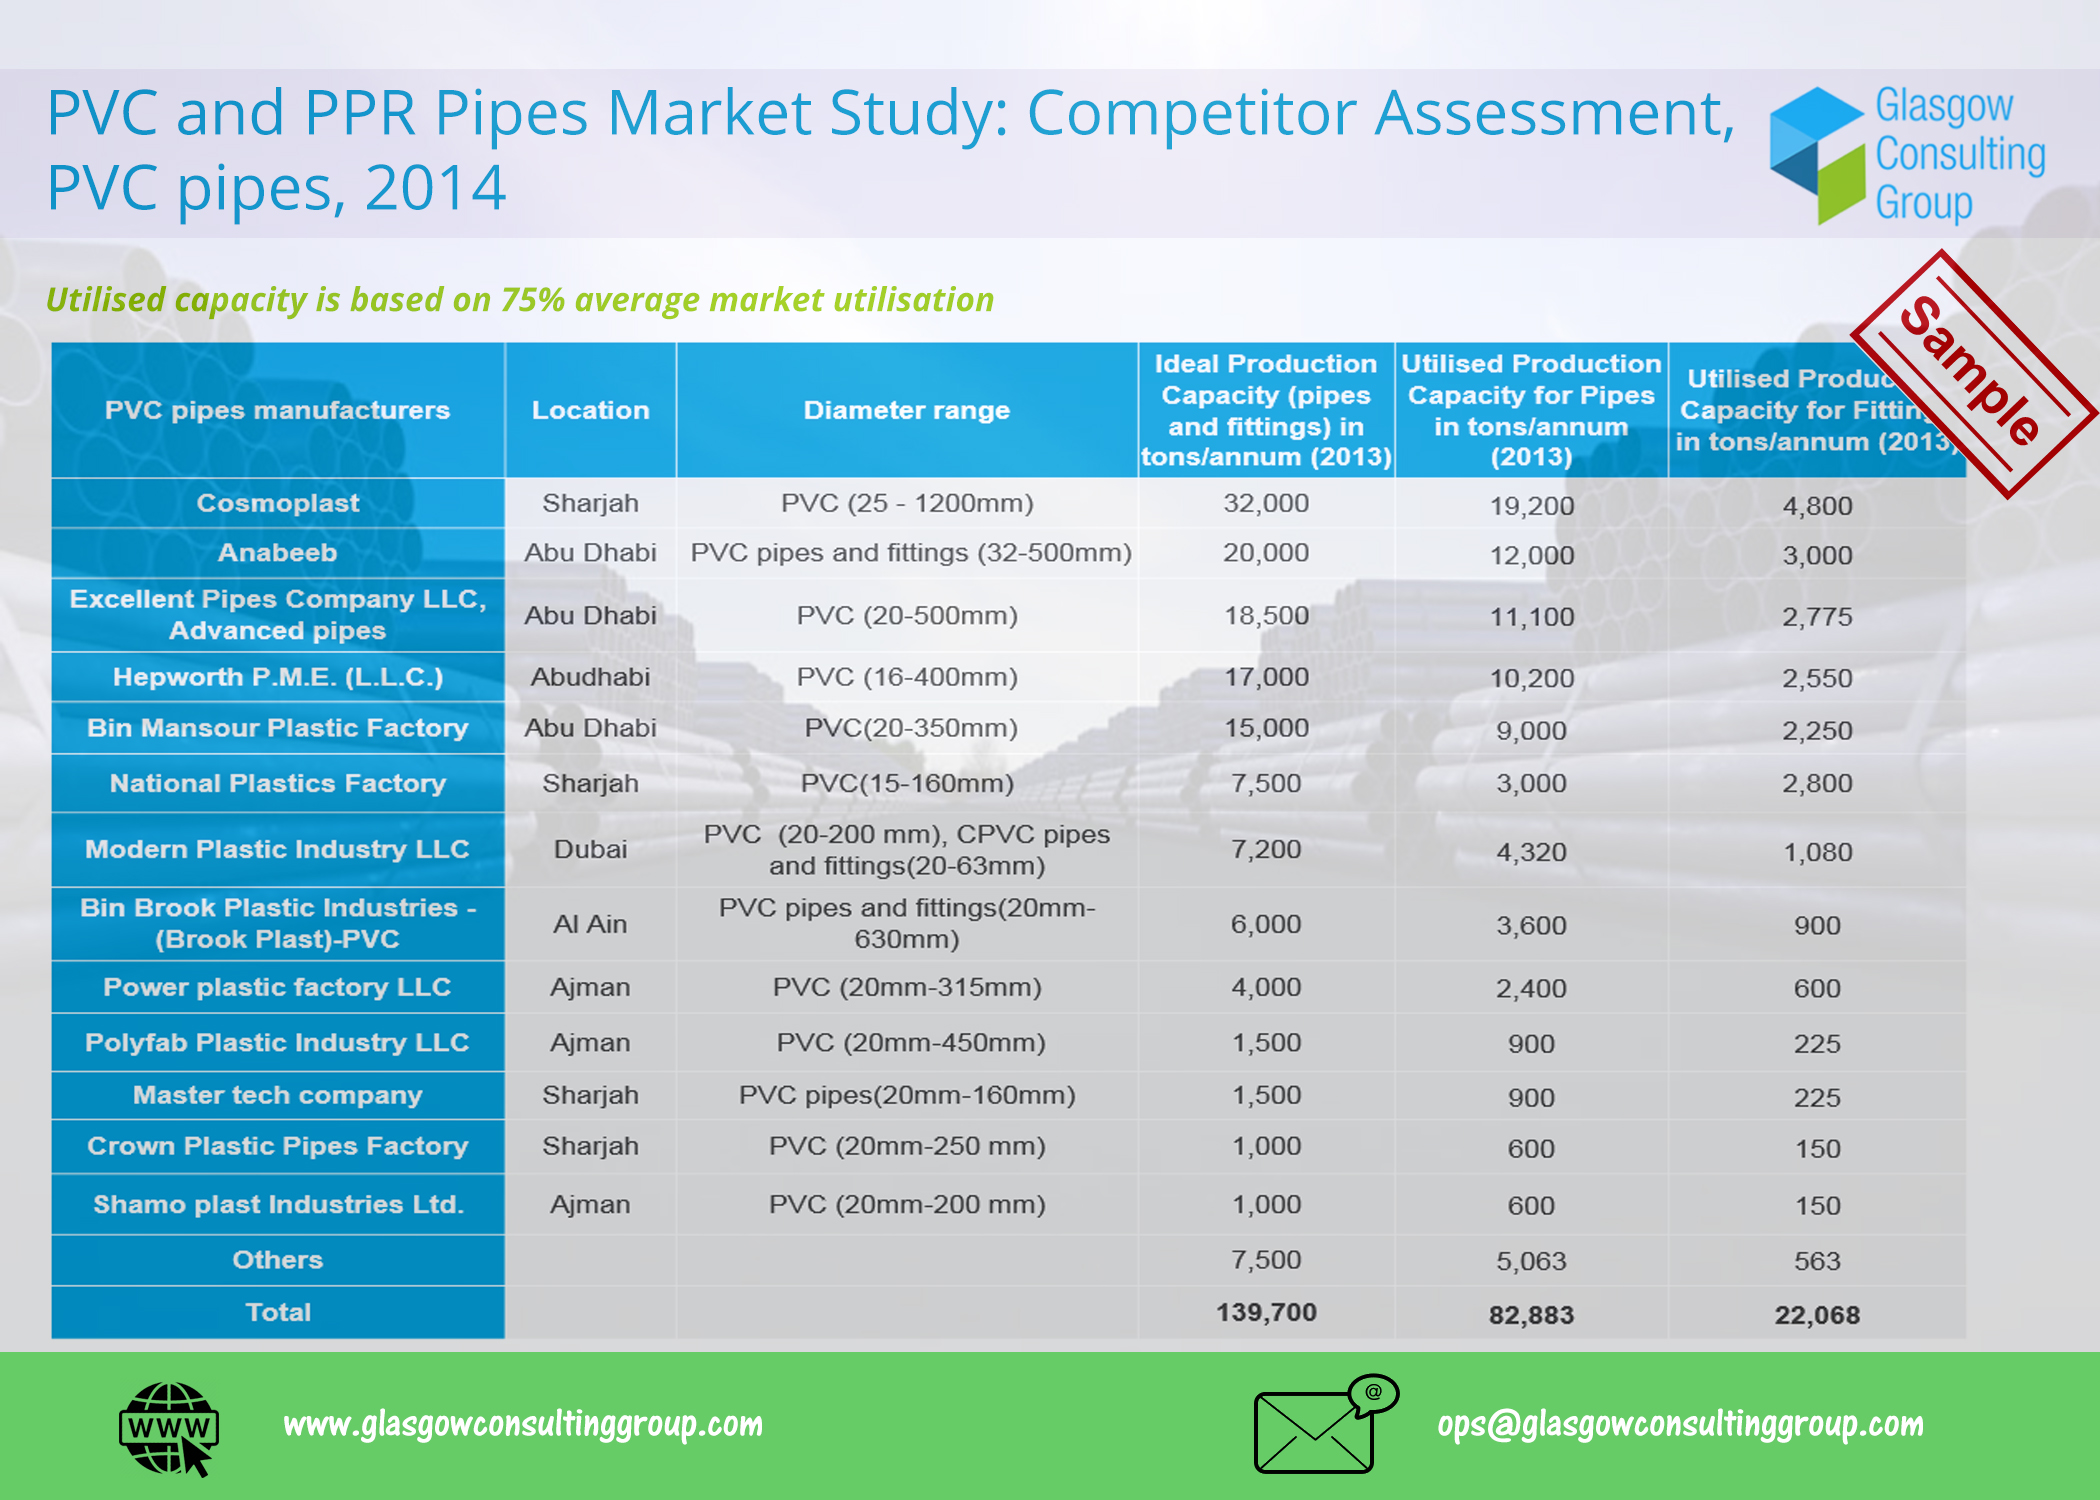 2 PVC and PPR Pipes Market Study, Competitor Assessment, PVC pipes, 2014